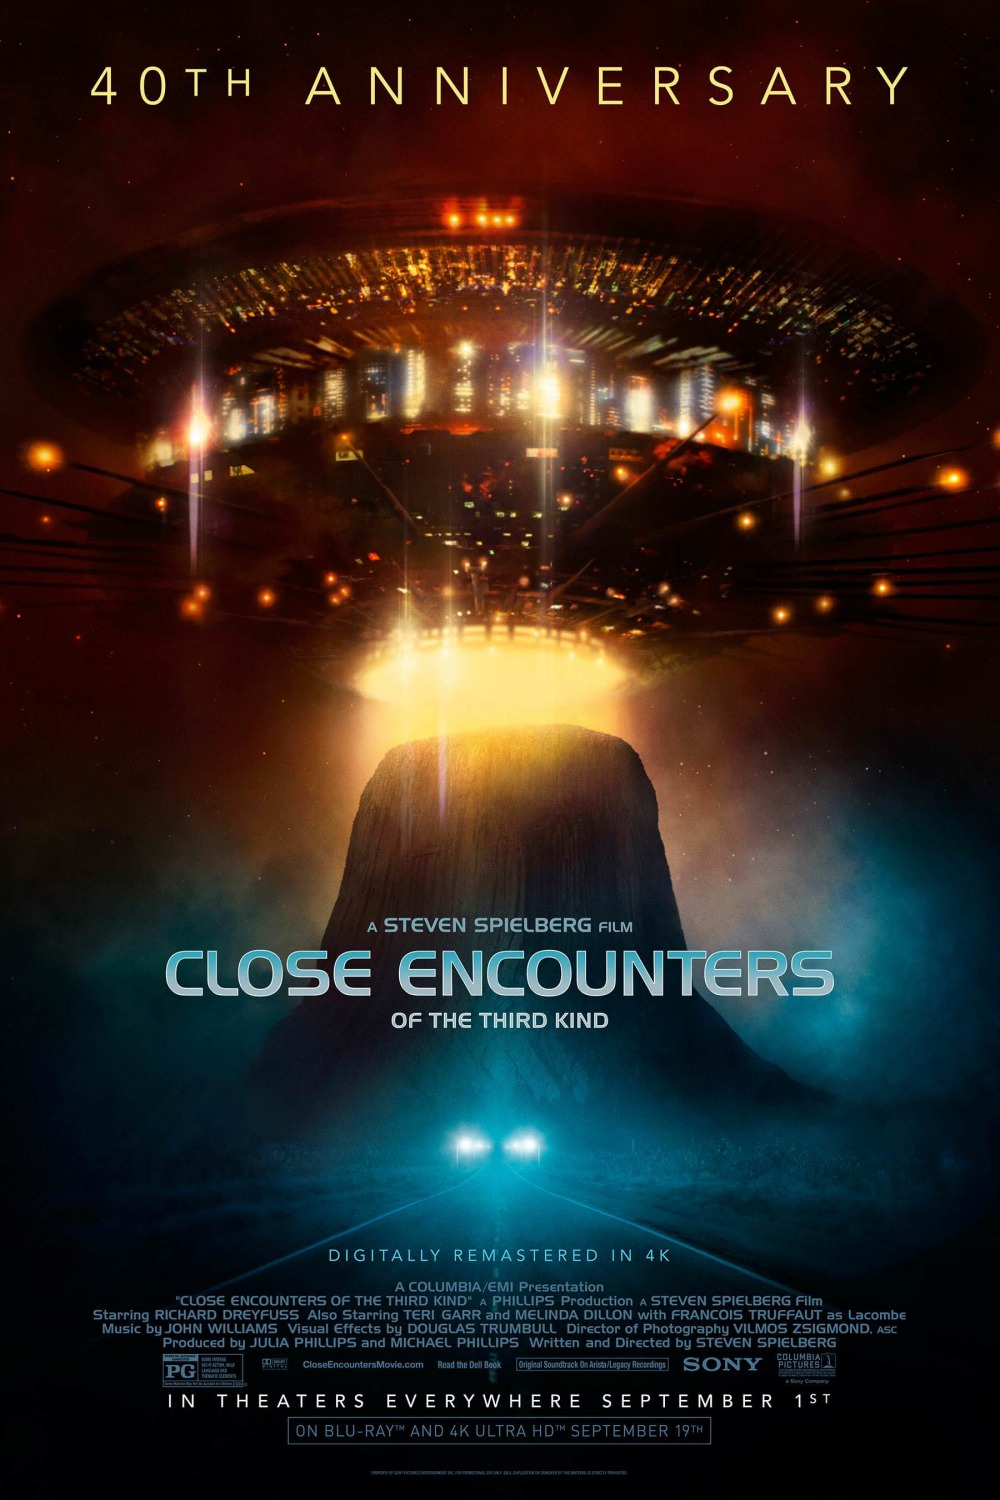 close_encounters_of_the_third_kind_poster.jpg